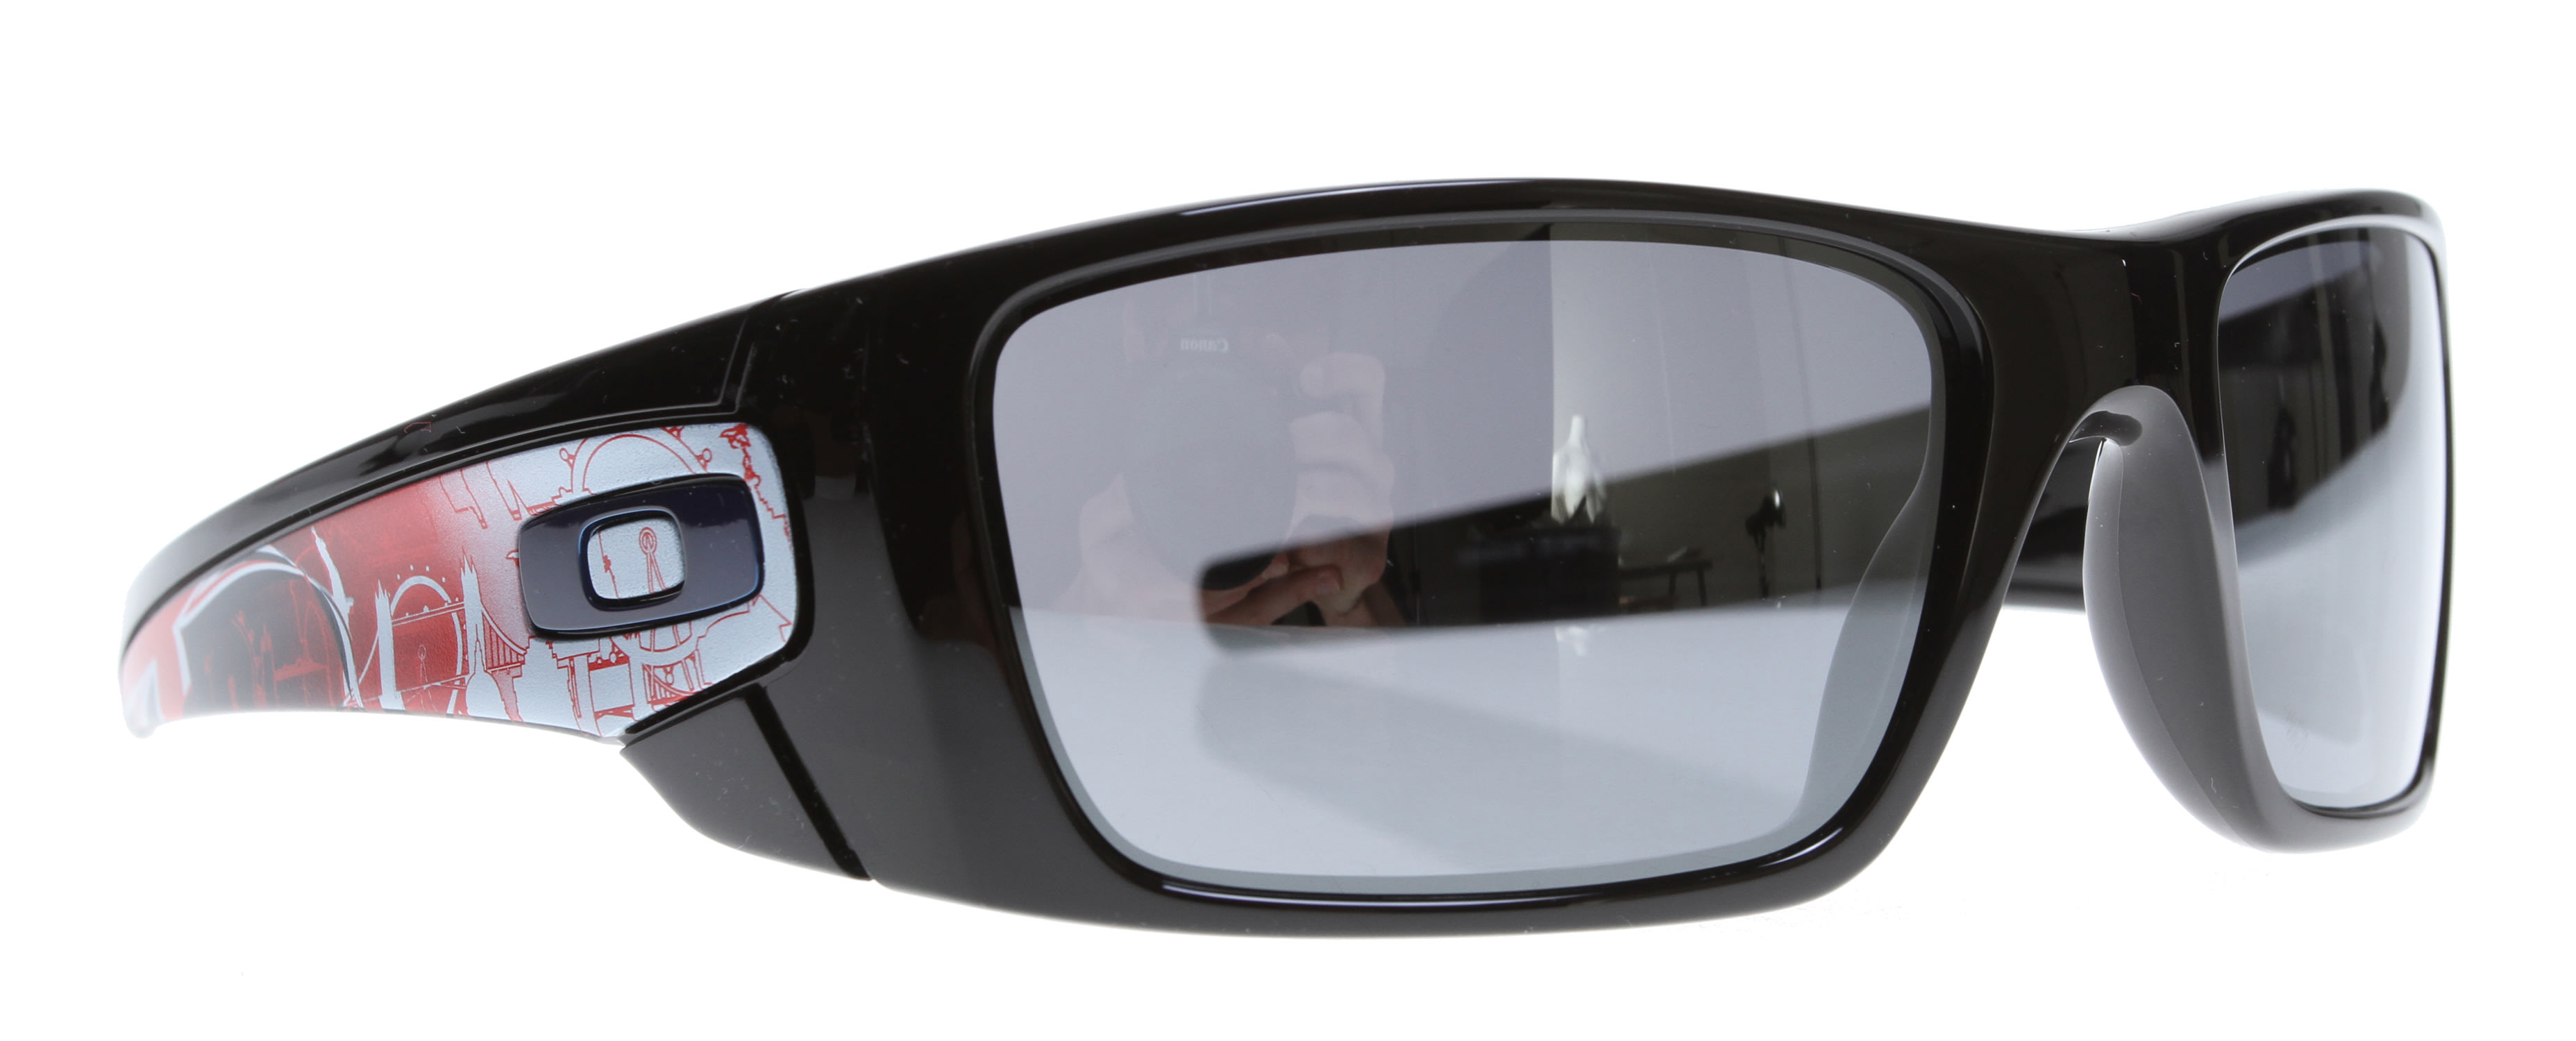 d6dd9bc5abe Oakley London Fuel Cell Sunglasses - thumbnail 1